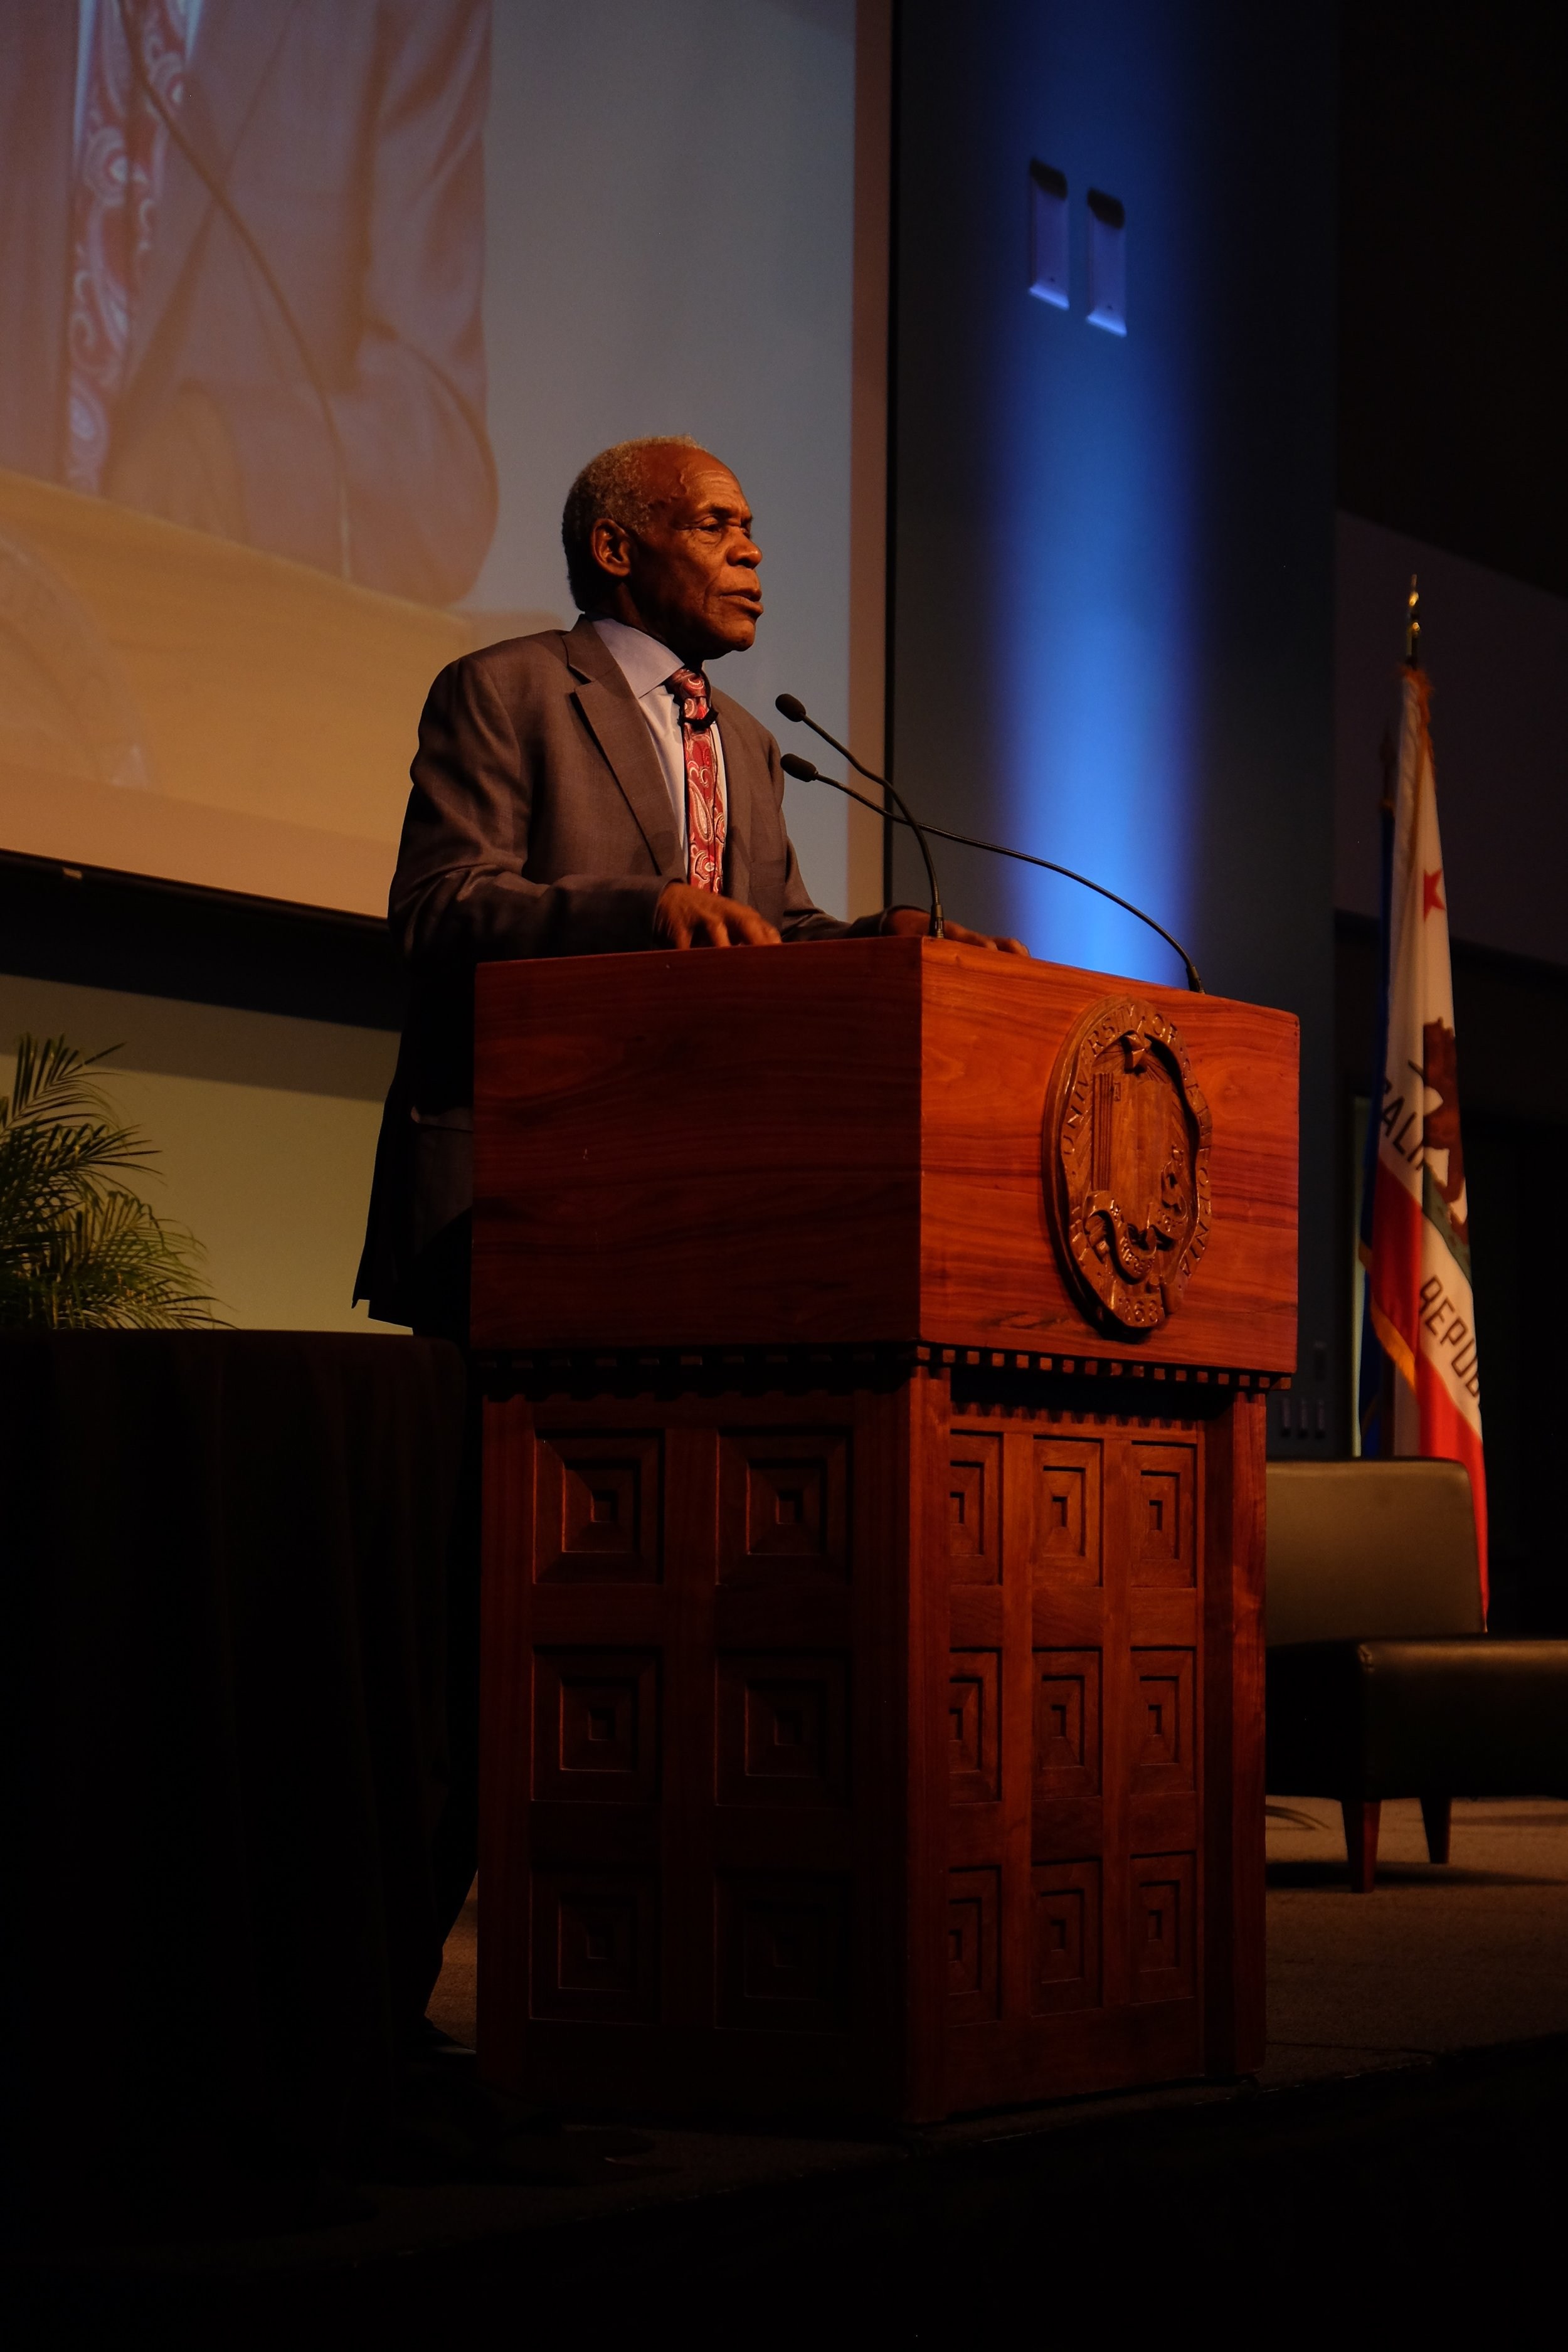 """Hollywood actor Danny Glover spoke at """"A Black Vision of Change"""" about his work as an activist in helping the global south."""